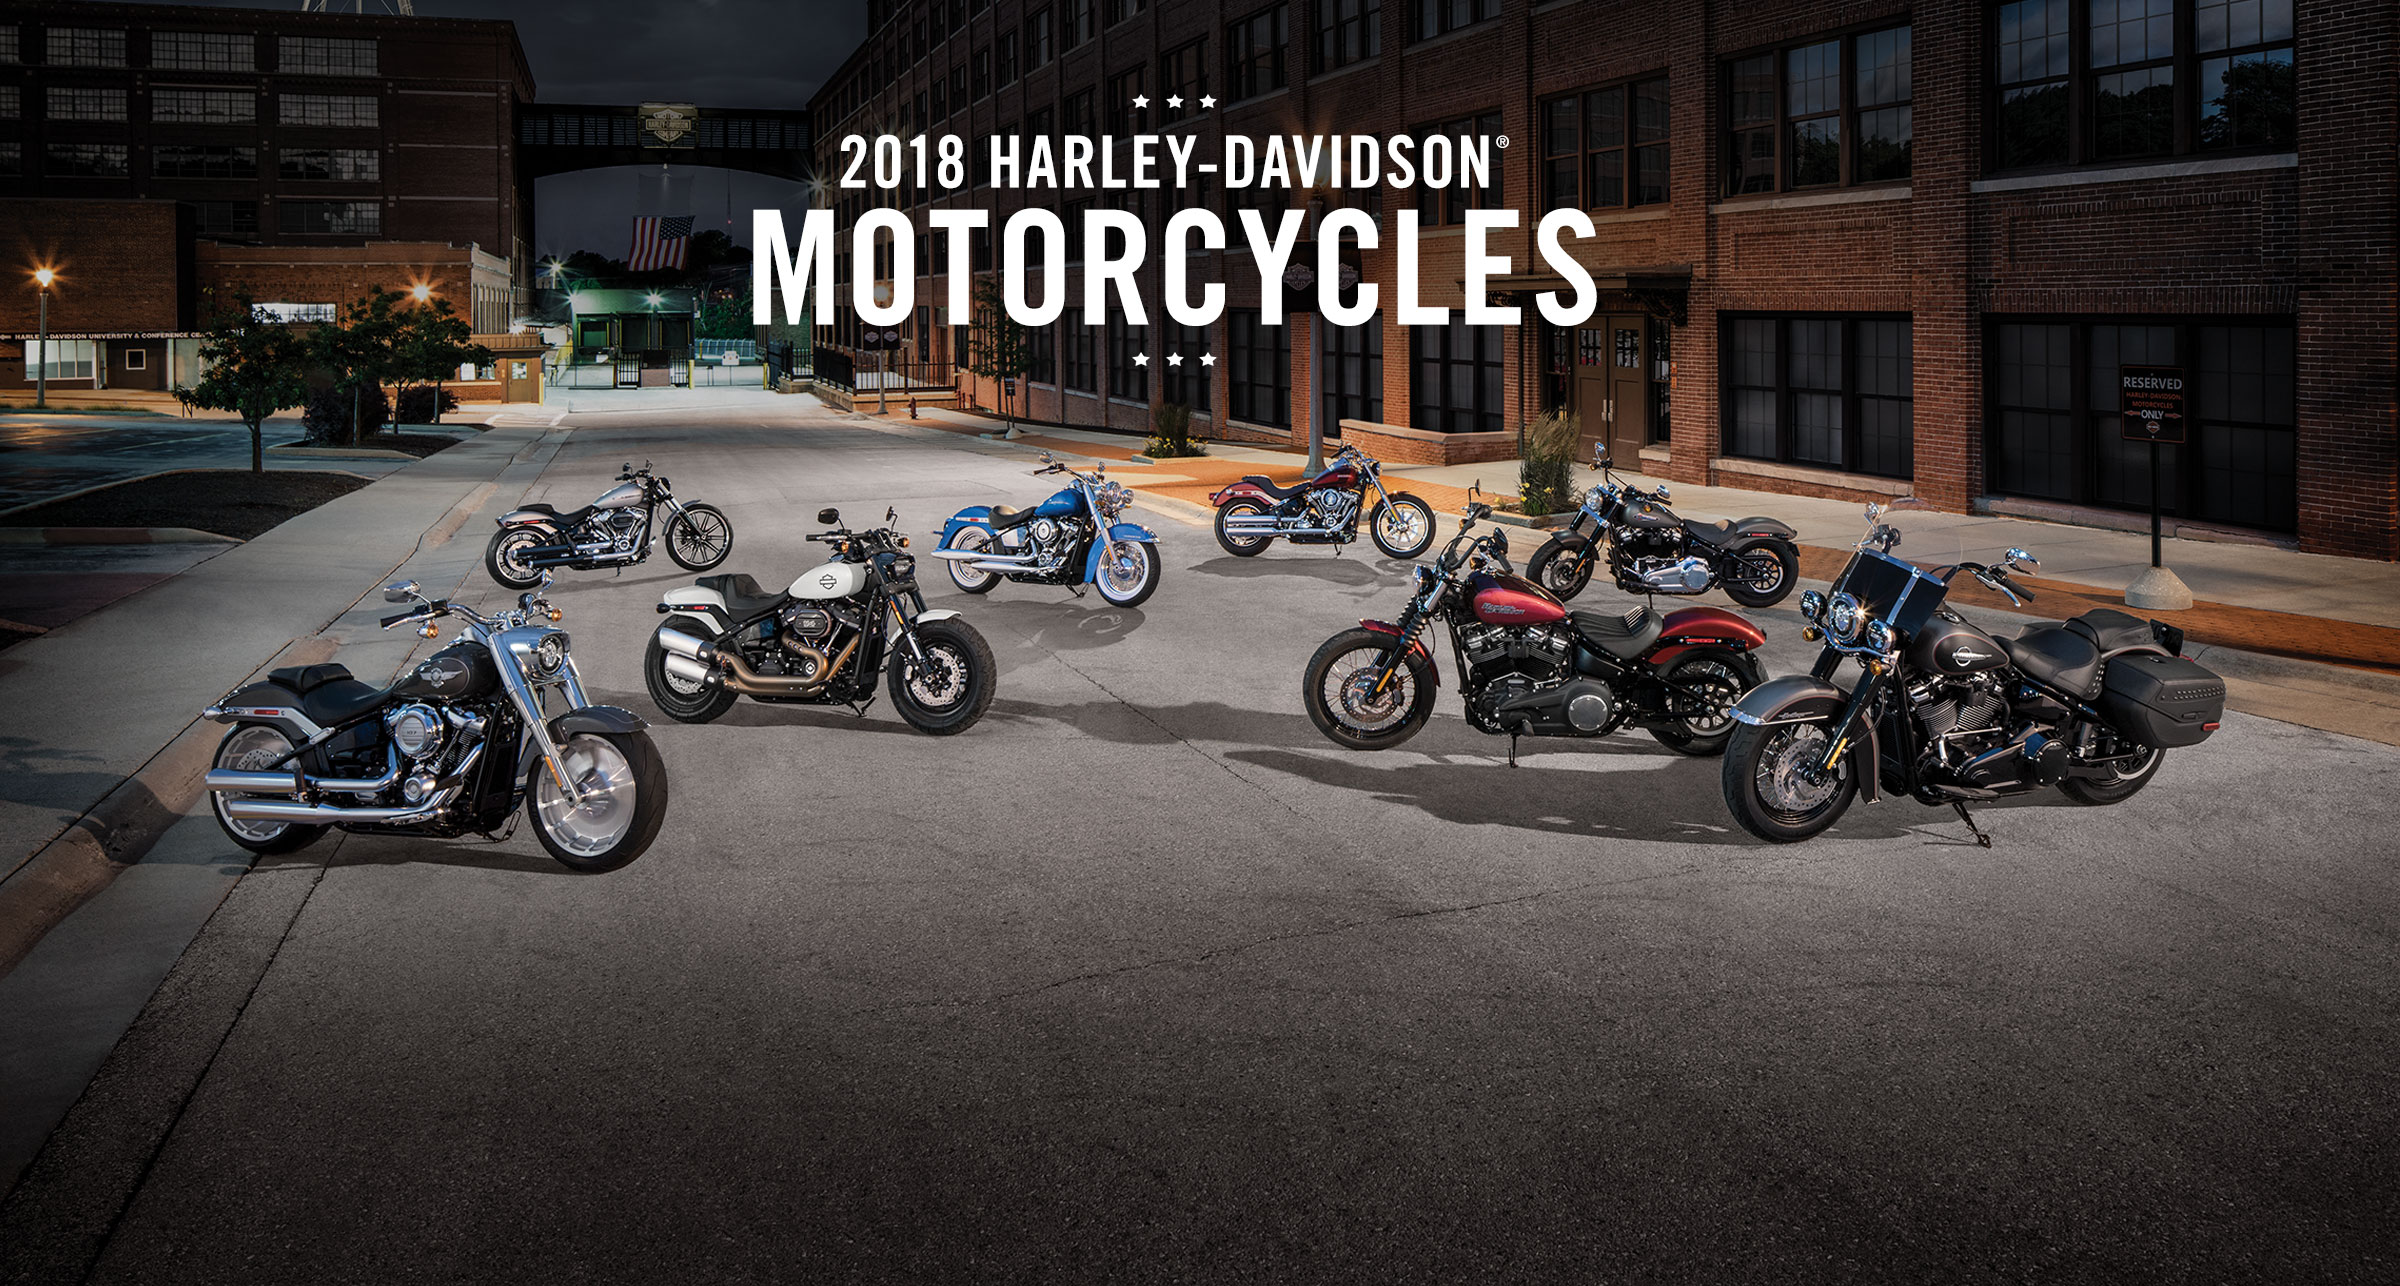 harley davidson dallas roto phase wiring diagram 2018 motorcycles cape town